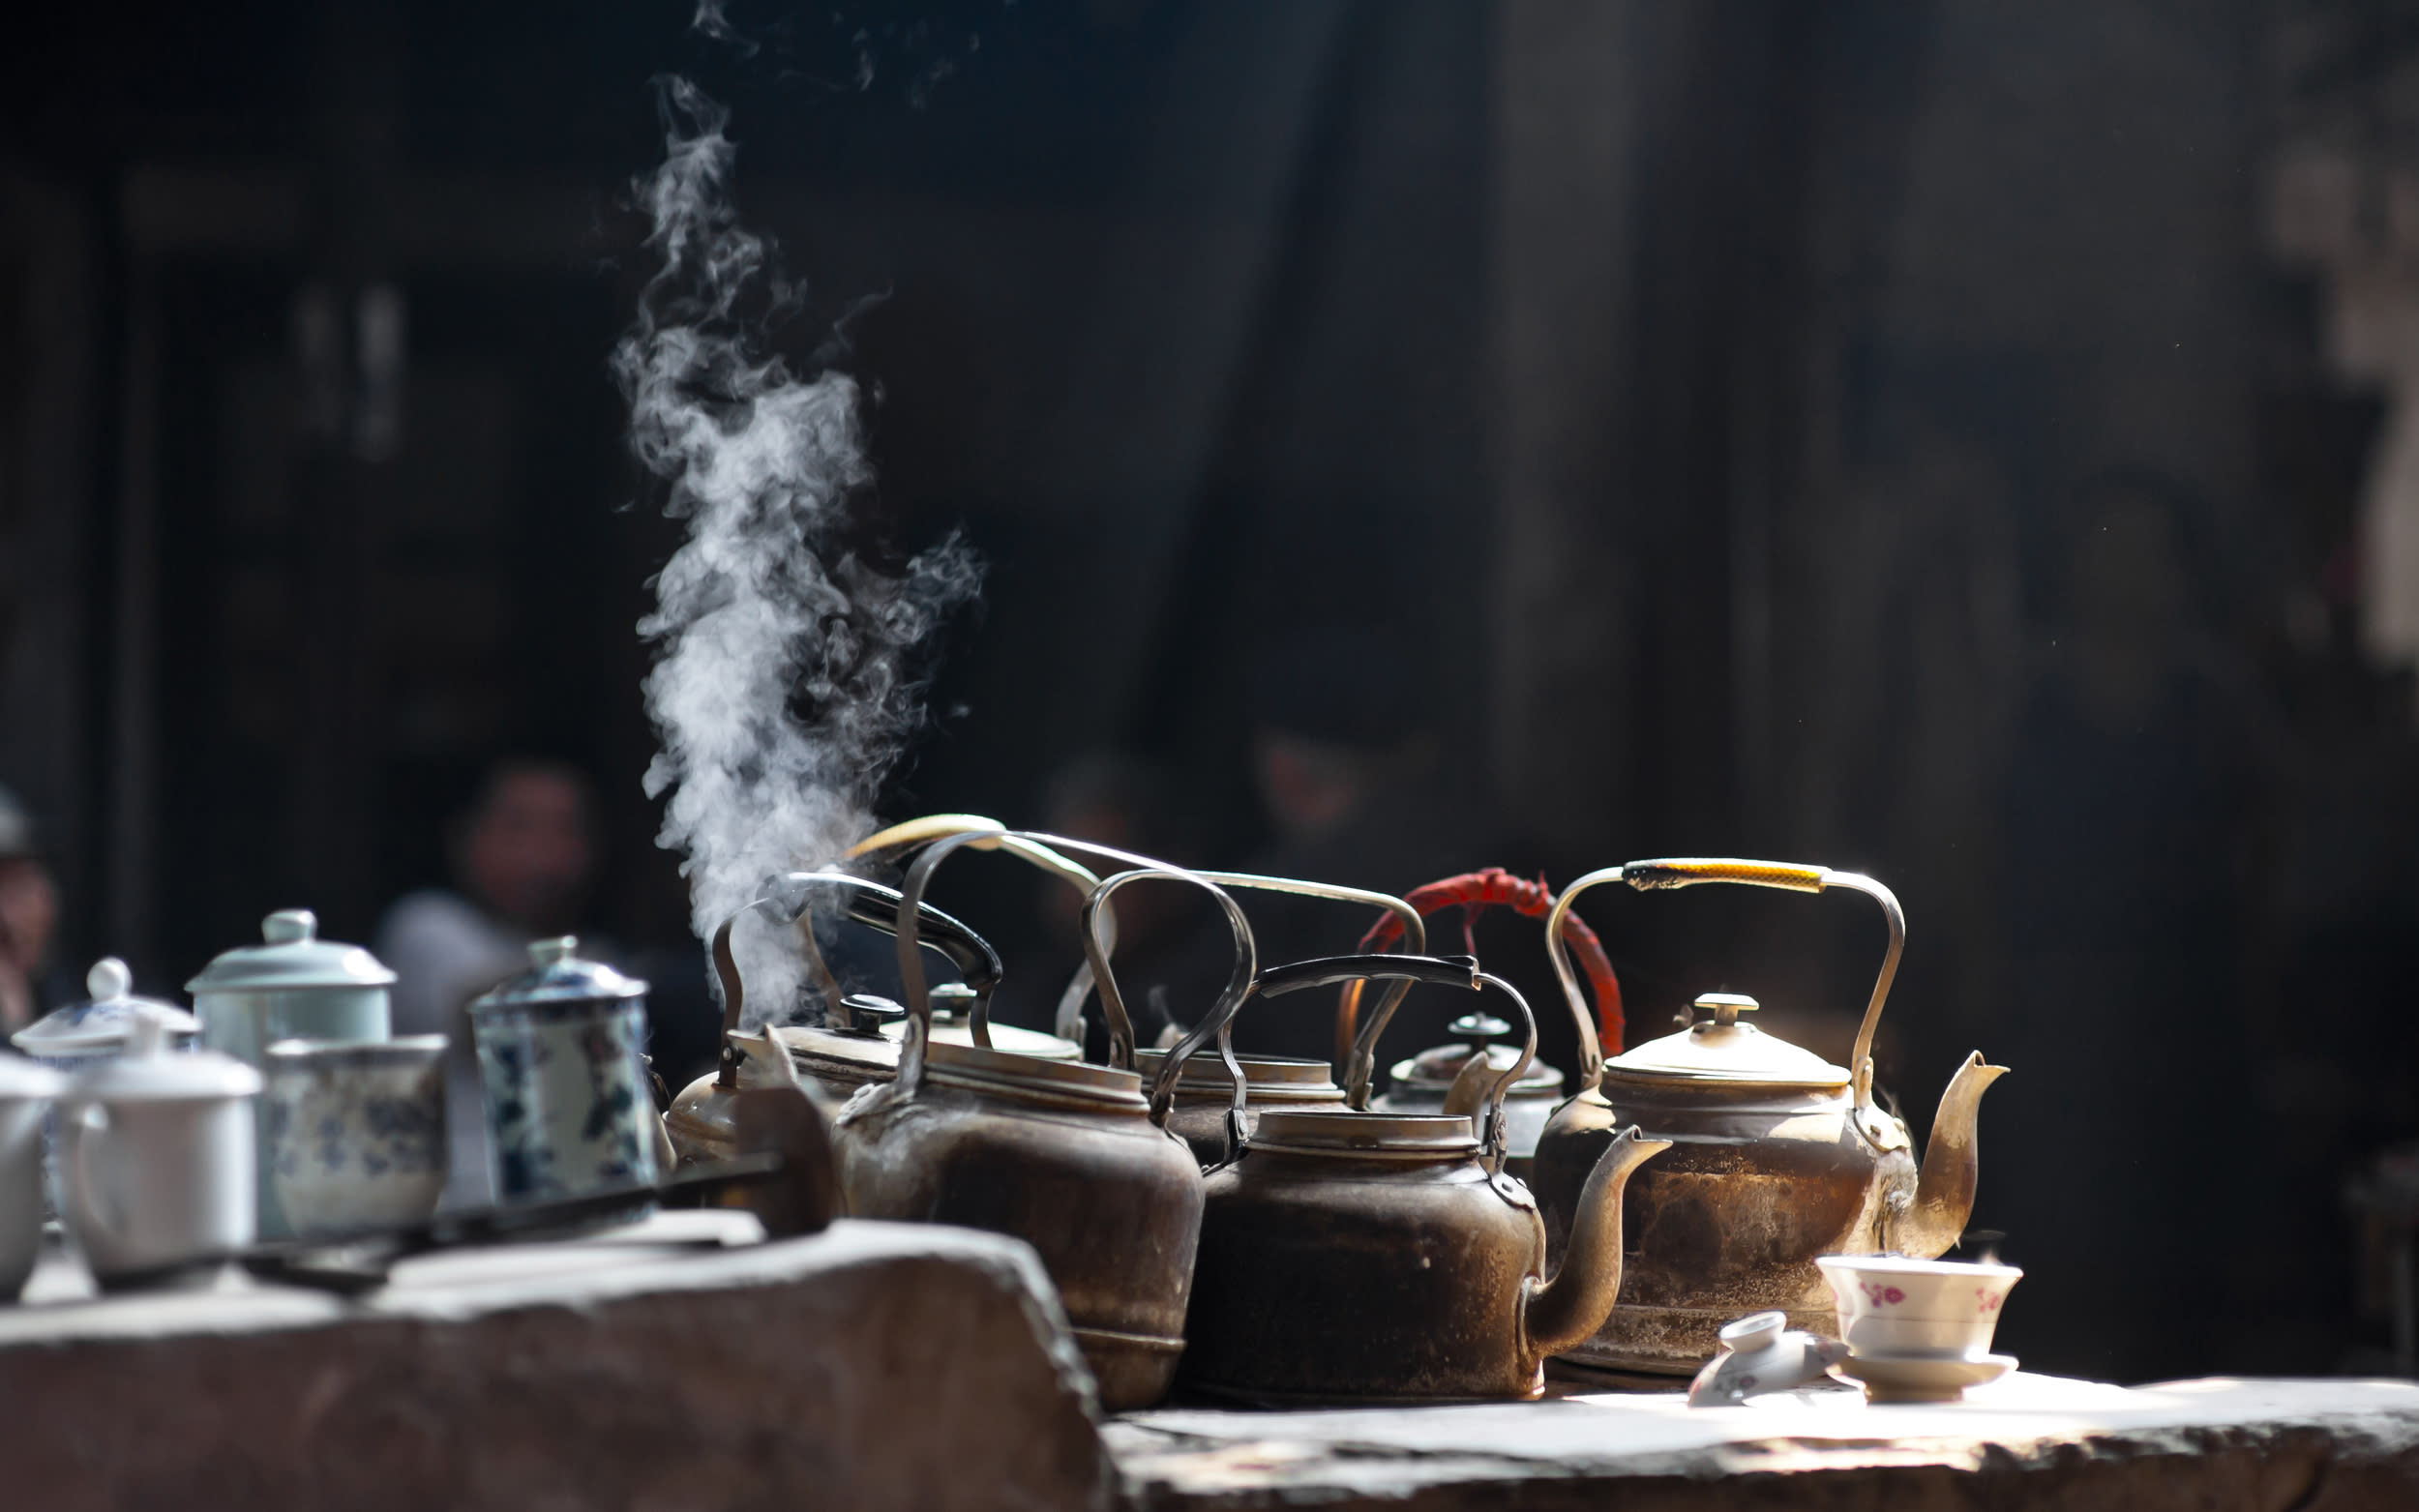 'Kettles on stove in old tea house, Chengdu, China'